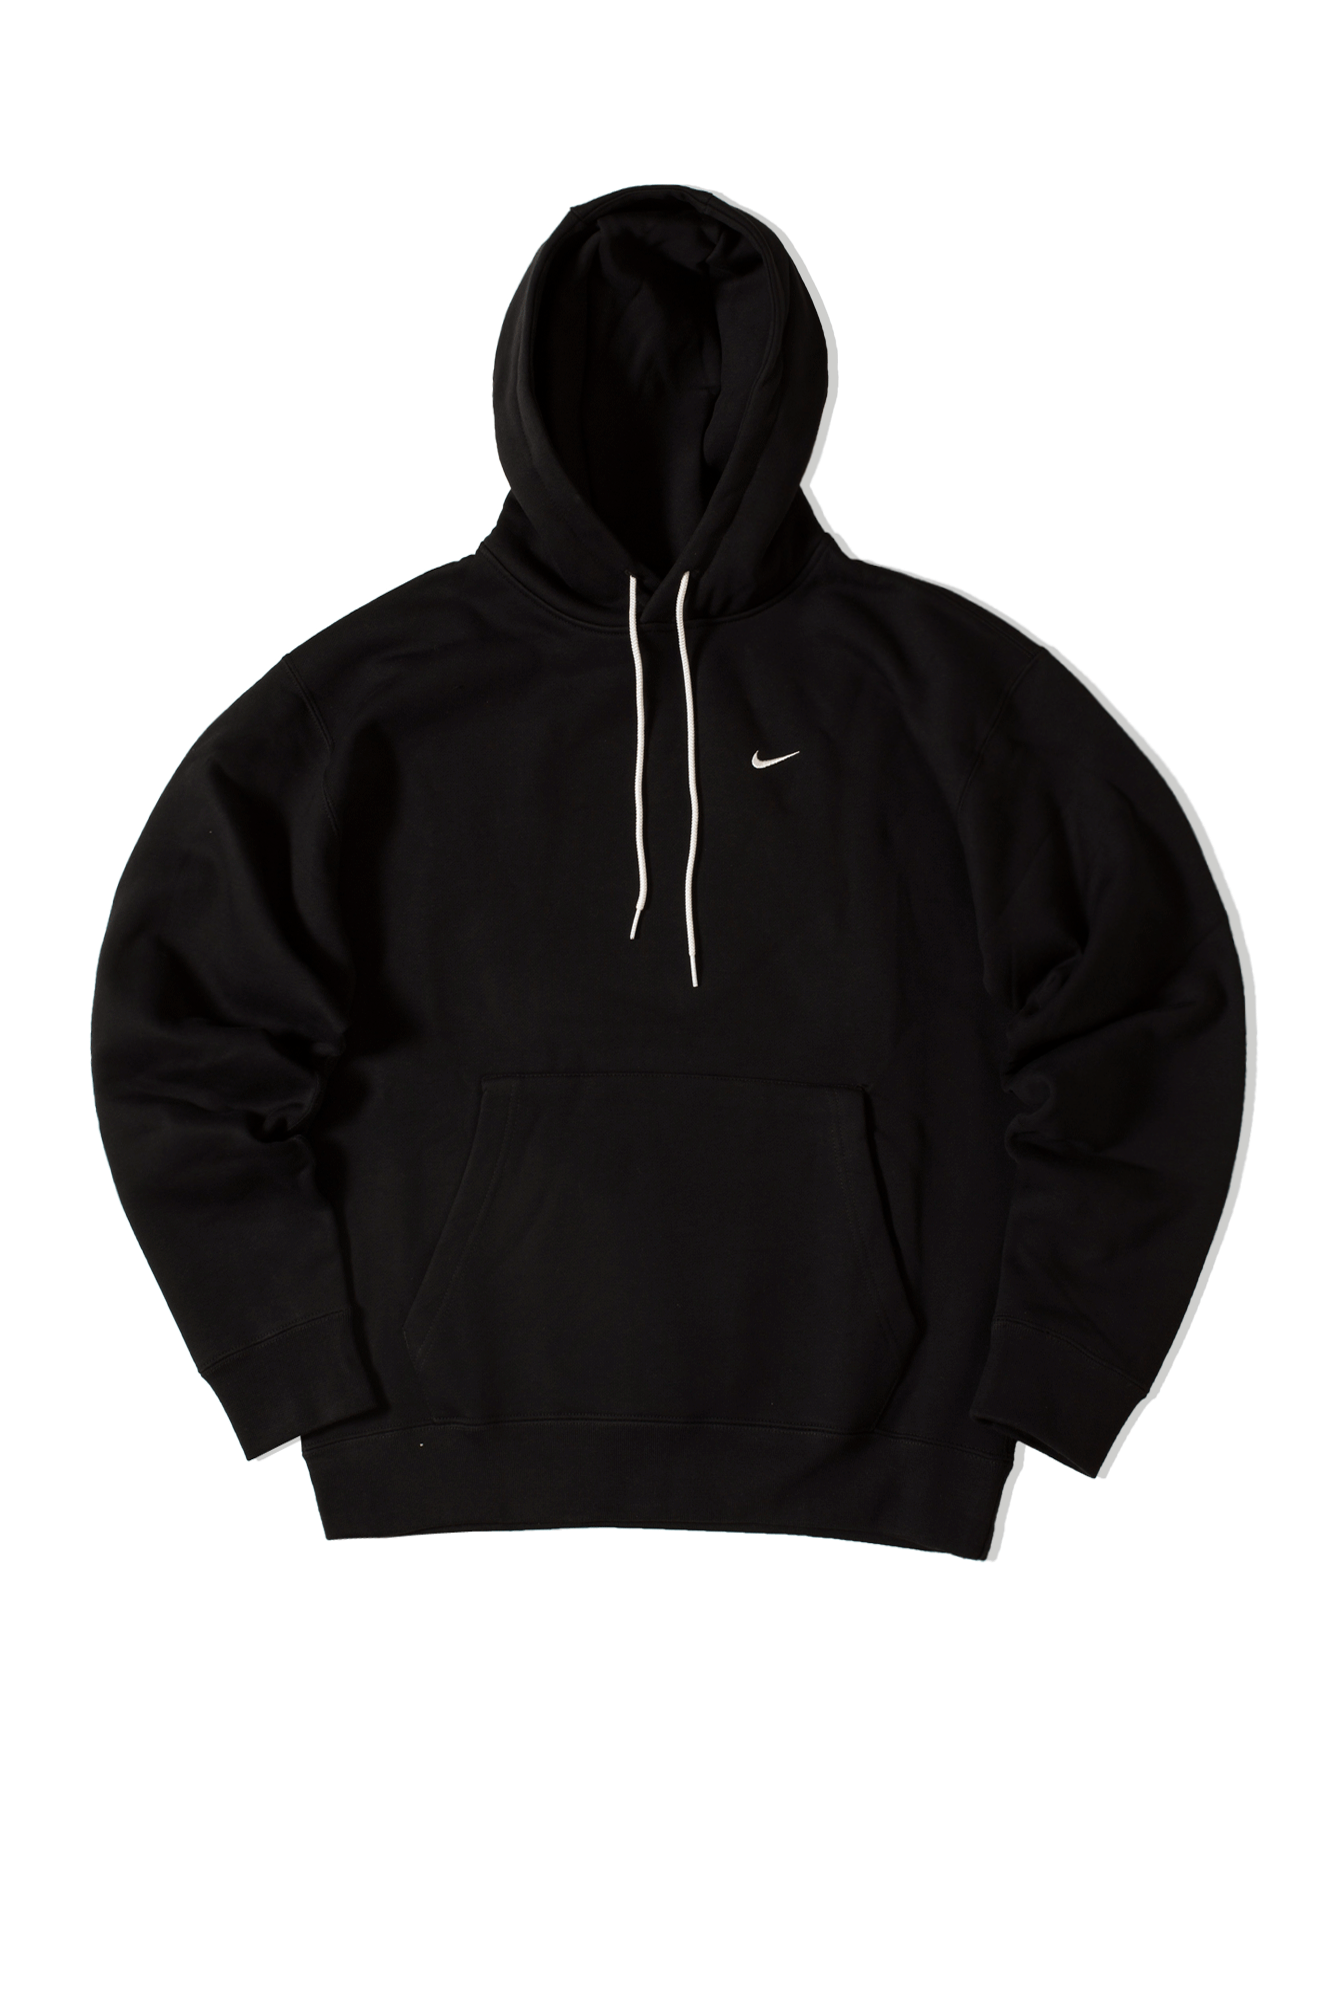 M Nrg Hooded Sweatshirt Nero